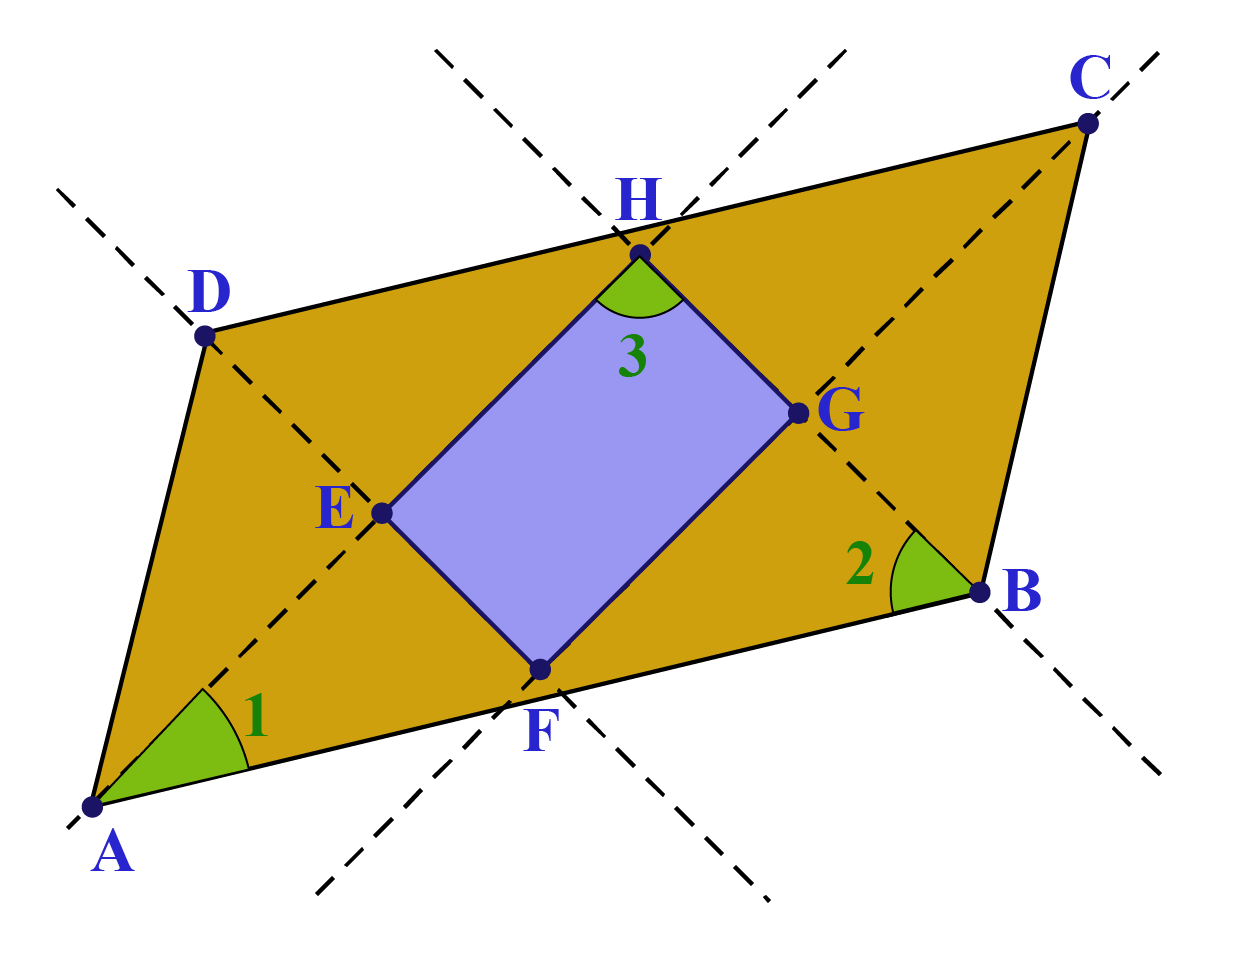 Four angle bisectors in a parallelogram.